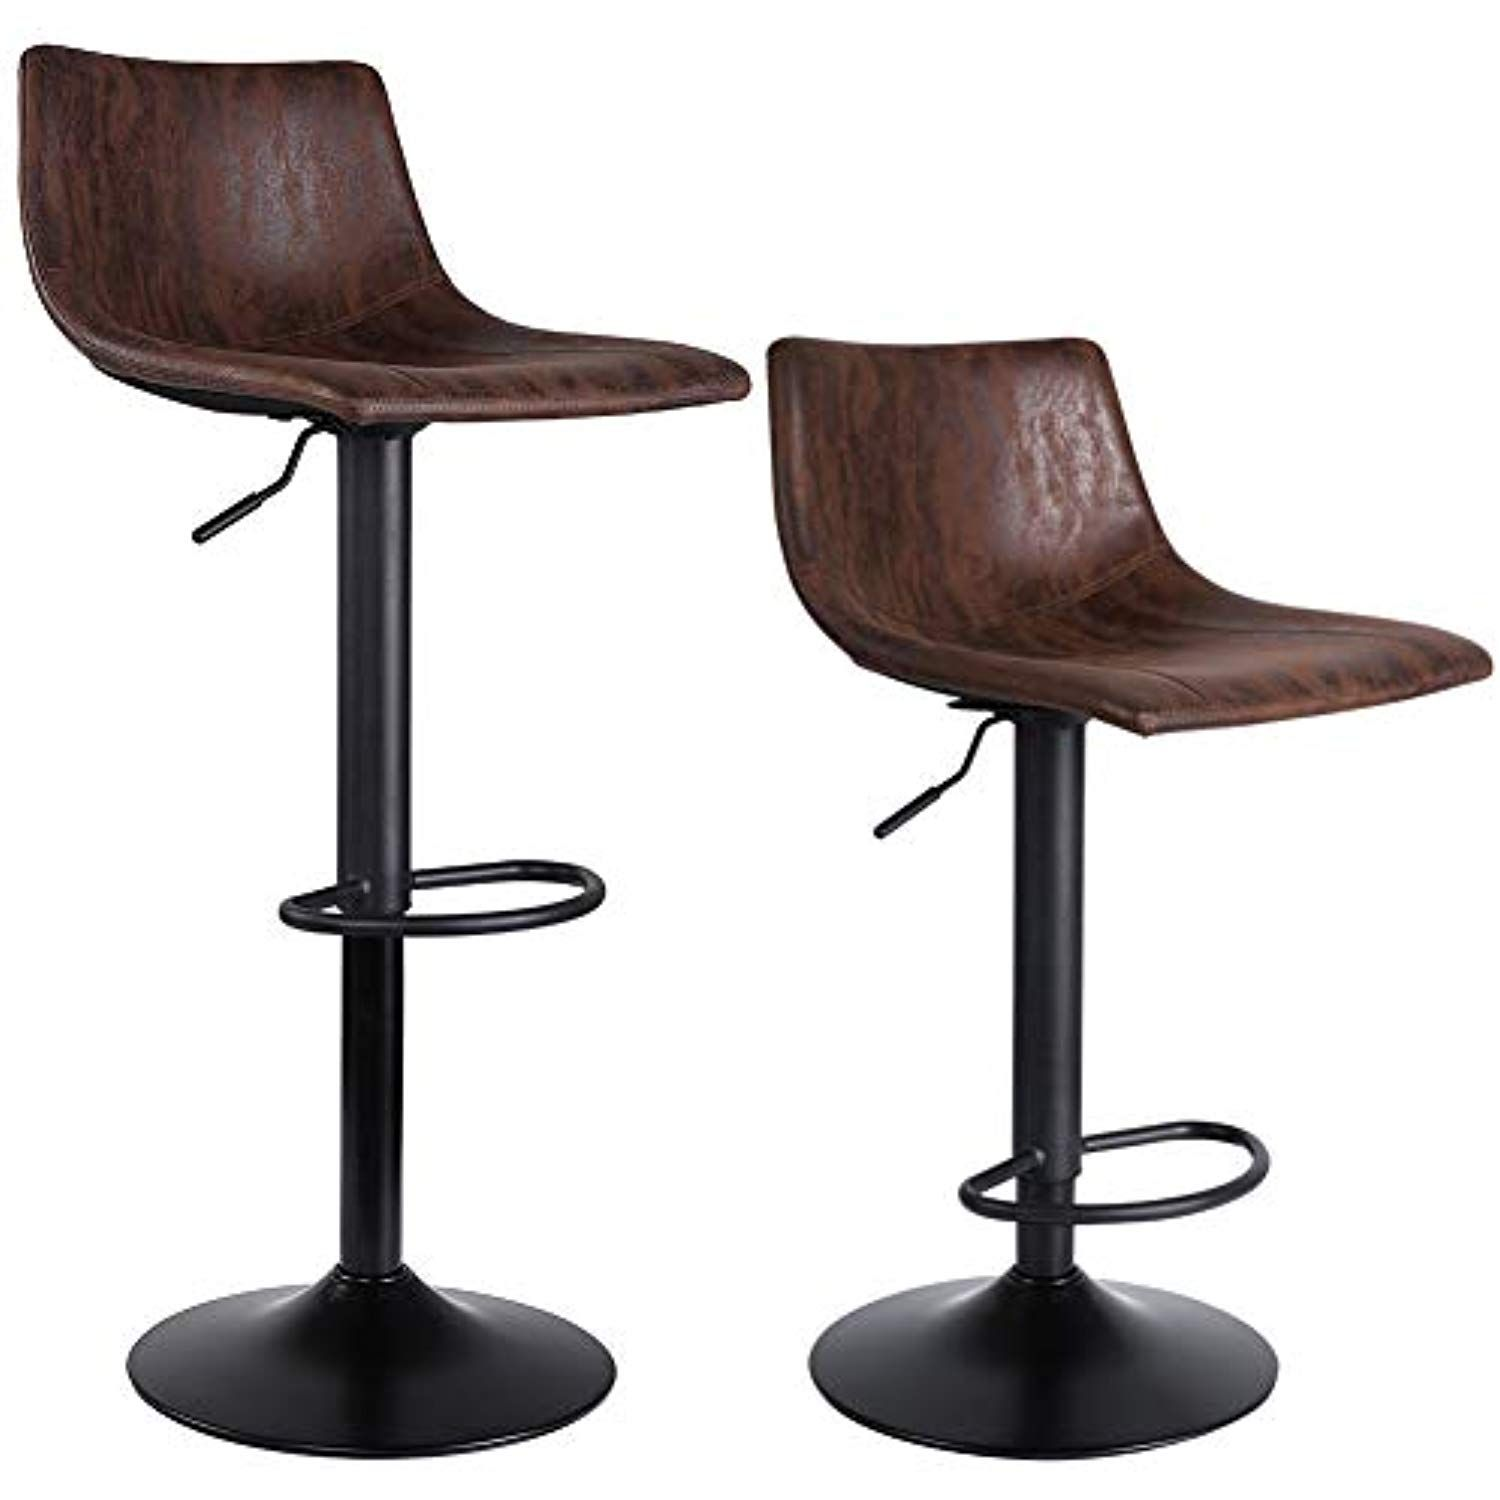 Superjare Set Of 2 Bar Stools Swivel Barstool Chairs With Back